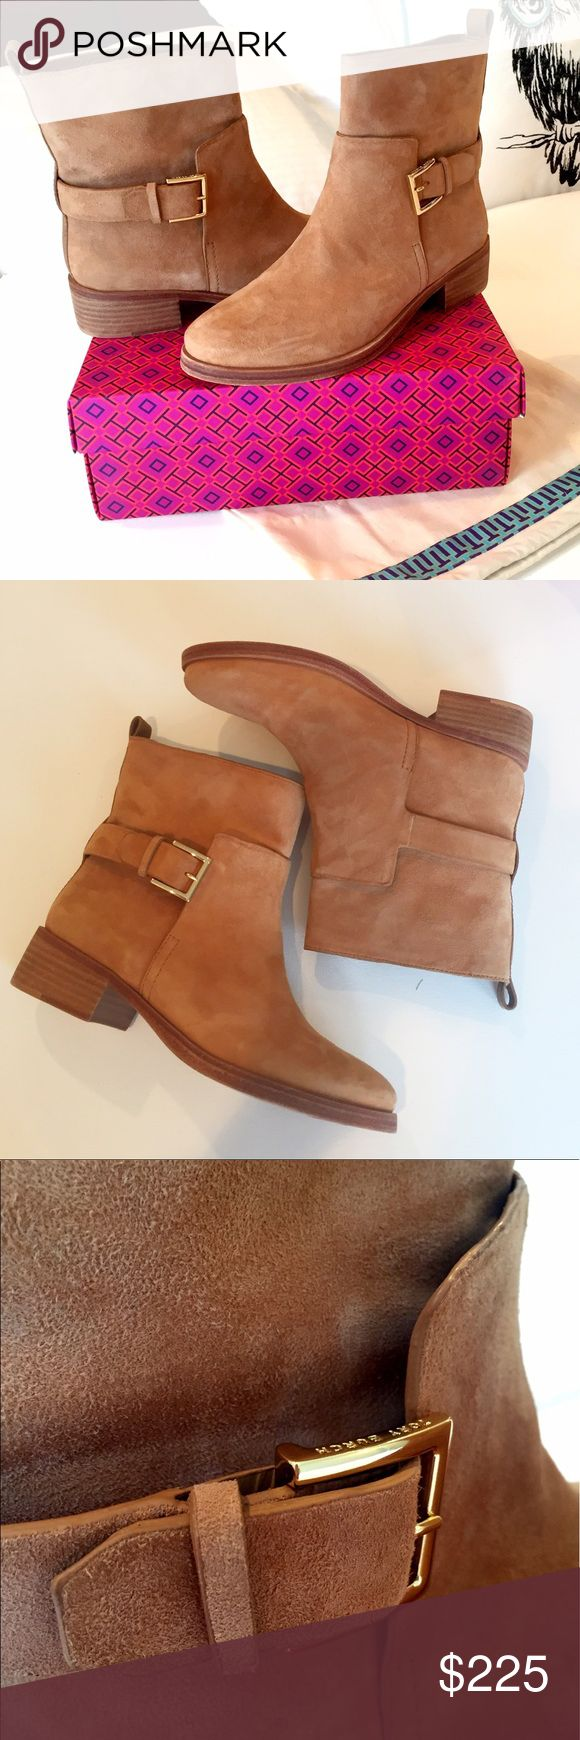 New in Box Tory Burch Booties Brand New Tory Burch Leather booties.  Size 8.5  Comes With Tory Burch Box and Tory Burch Dust bag. Leather Upper and Sole.  Made in Brazil.  Retails at $425 ($449.45 with taxes) Tory Burch Shoes Ankle Boots & Booties